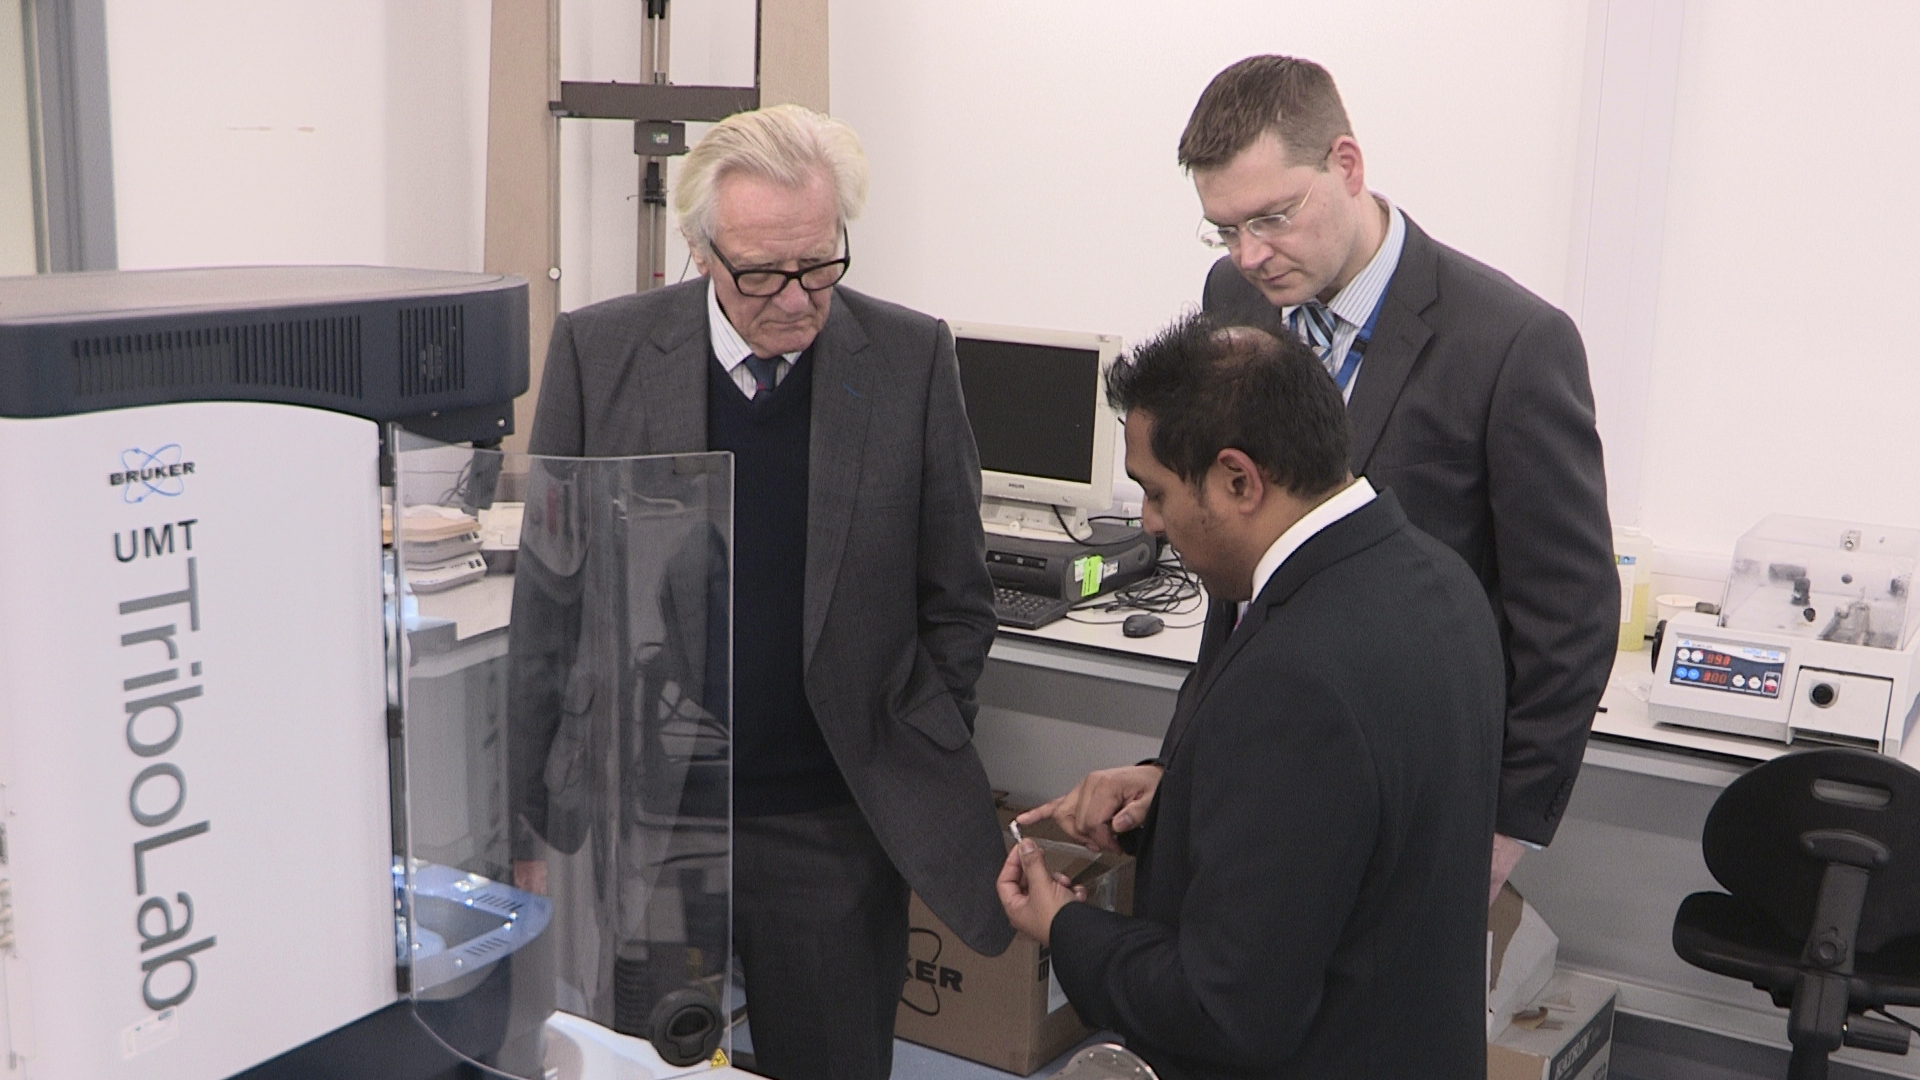 TWI's Amit Rana demonstrates the effects and measurement of frictional force on surfaces in constant contact with Lord Heseltine and TWI Operations Director Mike Russell